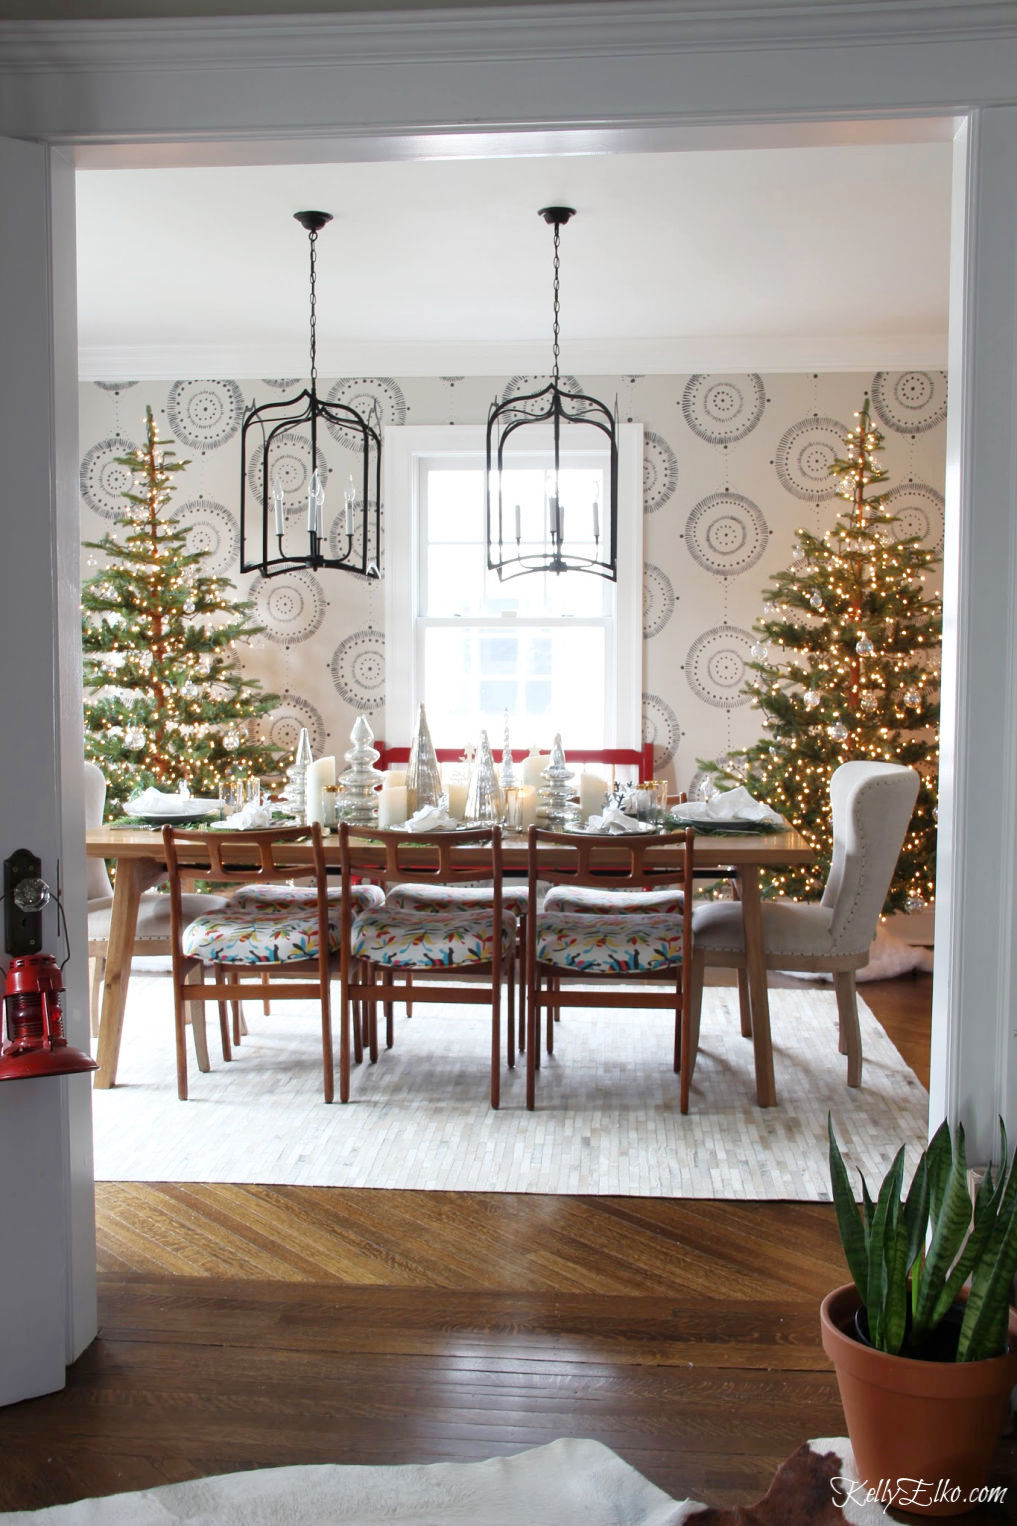 Beautiful Christmas Home Tour - love the pair of sparse Christmas trees in the dining room covered in clear ornaments kellyelko.com #christmas #christmasdecor #christmasdecorating #christmashome #christmastour #diychristmas #christmasideas #christmasmantel #christmastree #christmasornaments #vintagechristmas #farmhousechristmas #colorfulchristmas #creativechristmas #kellyelko #christmasdiningroom #diningroom #lighting #chandeliers